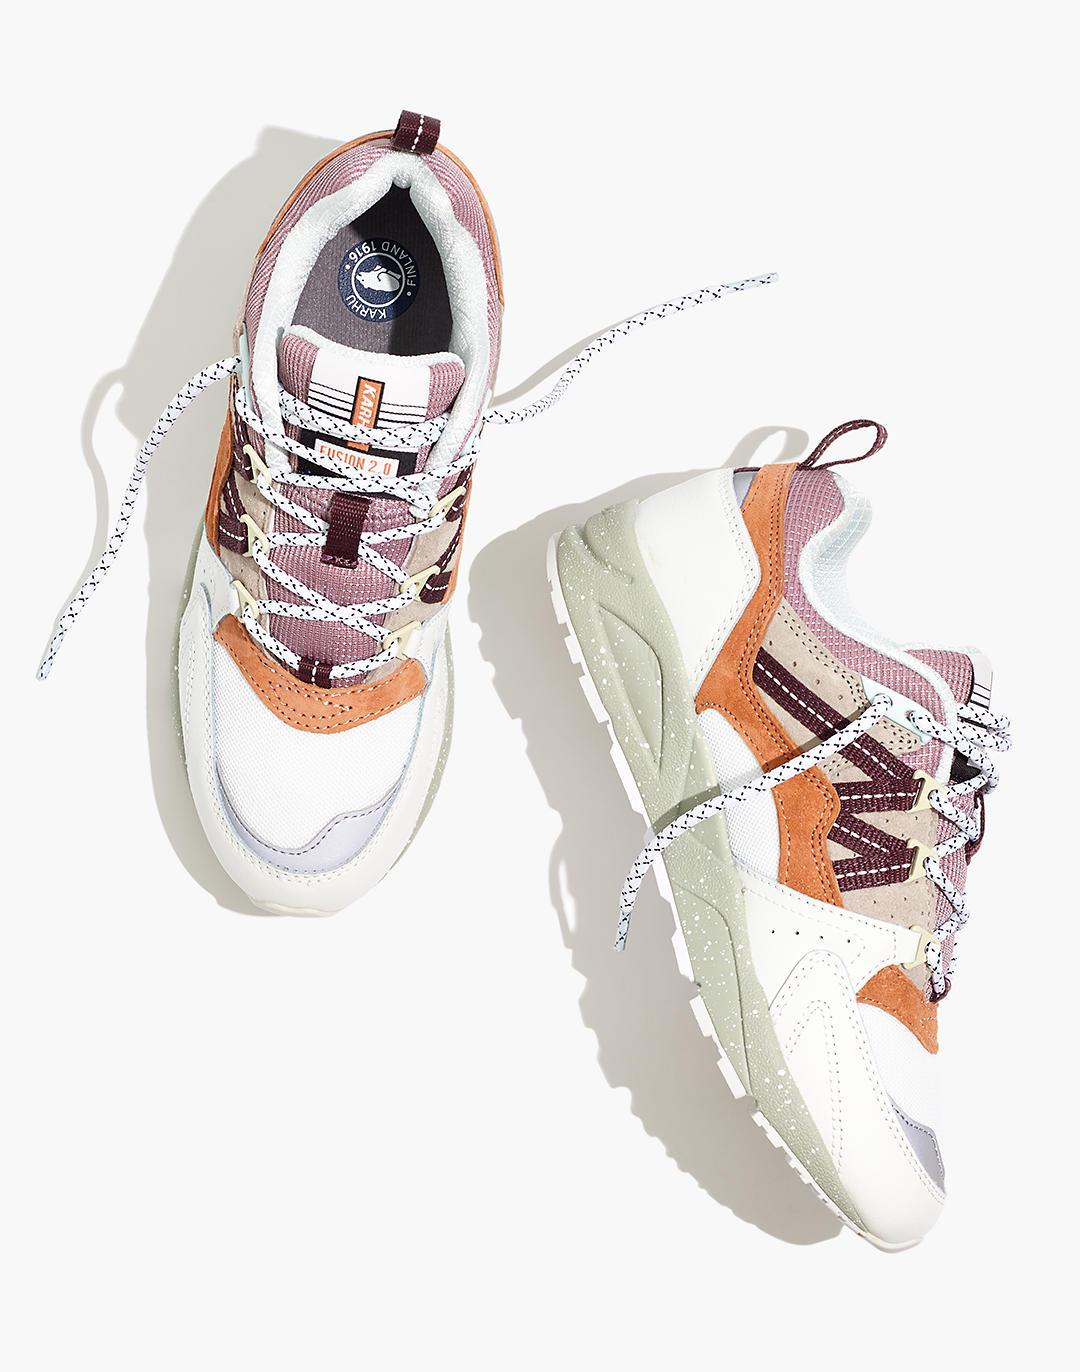 Karhu Unisex Fusion 2.0 Lace-Up Sneakers in Rainy Day